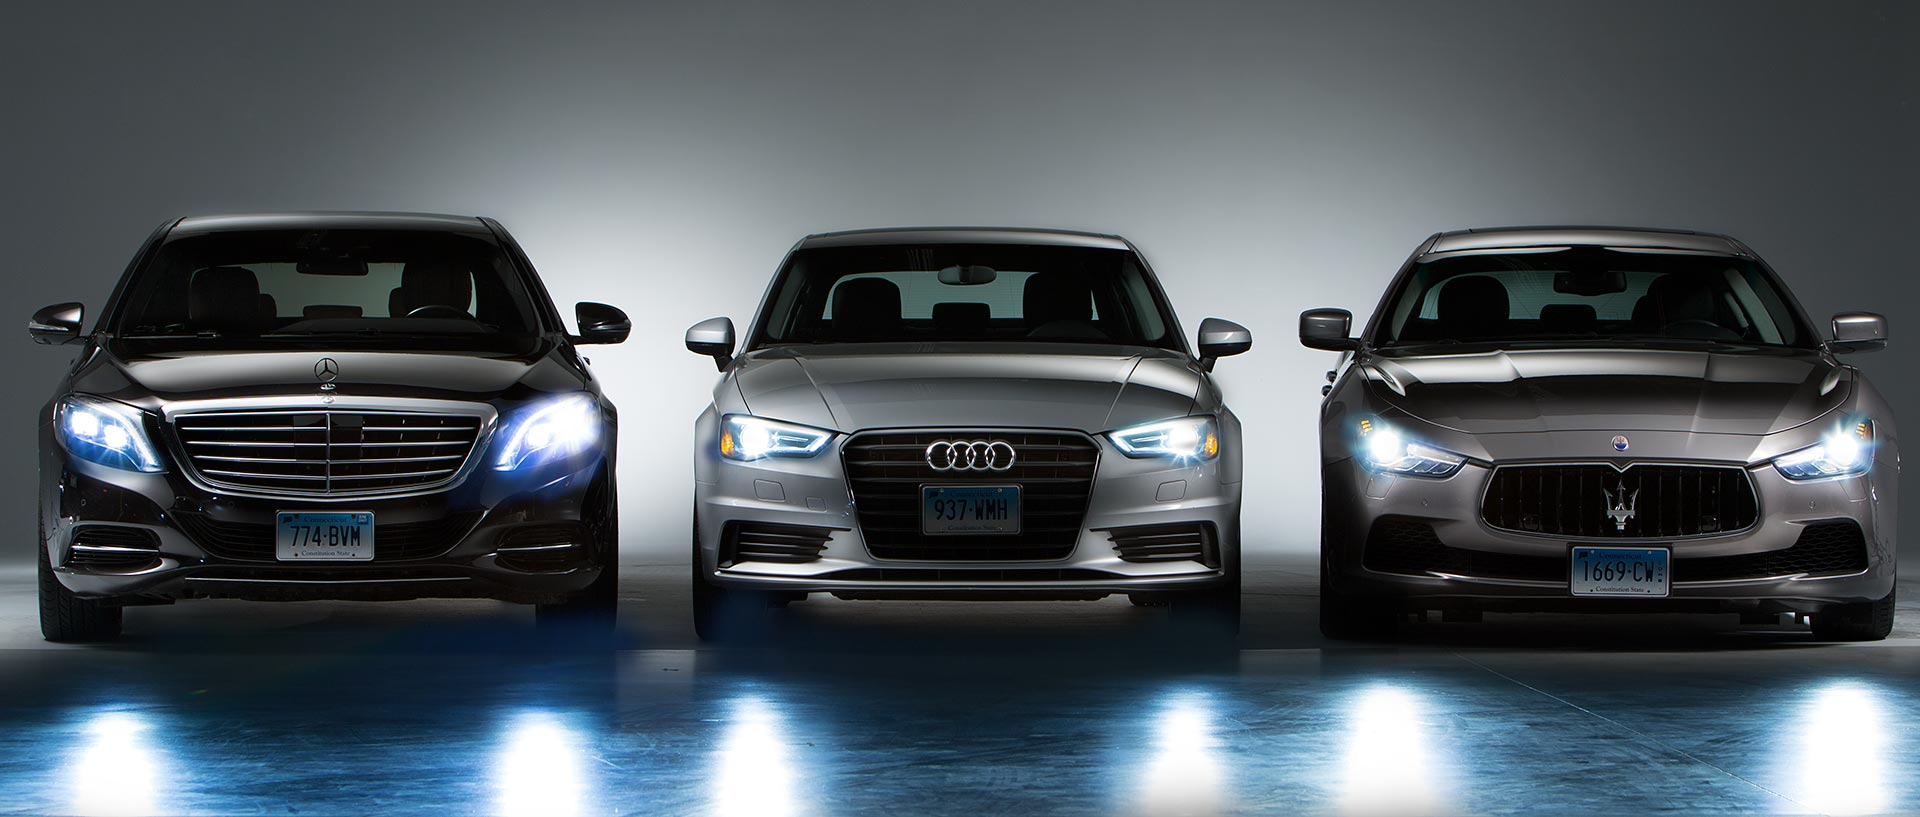 Led Auto Lights >> Car Headlight Performance Found to Be Not So Bright - Consumer Reports